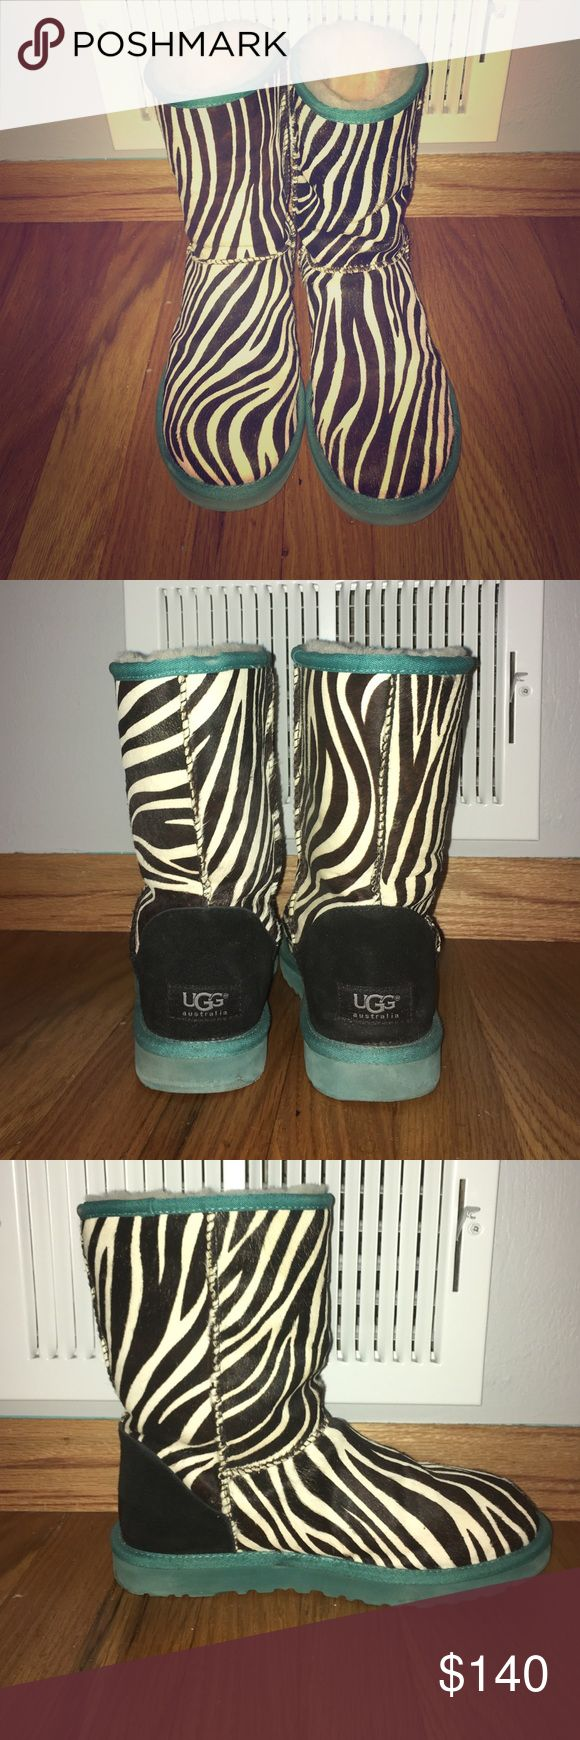 """UGG Exotic Zebra"" boots I bought these boots from the UGG Store in MOA two winters ago. I have worn them twice. They are limited edition. They are in great shape. Very furry as you can tell in the pictures. UGG Shoes Winter & Rain Boots"